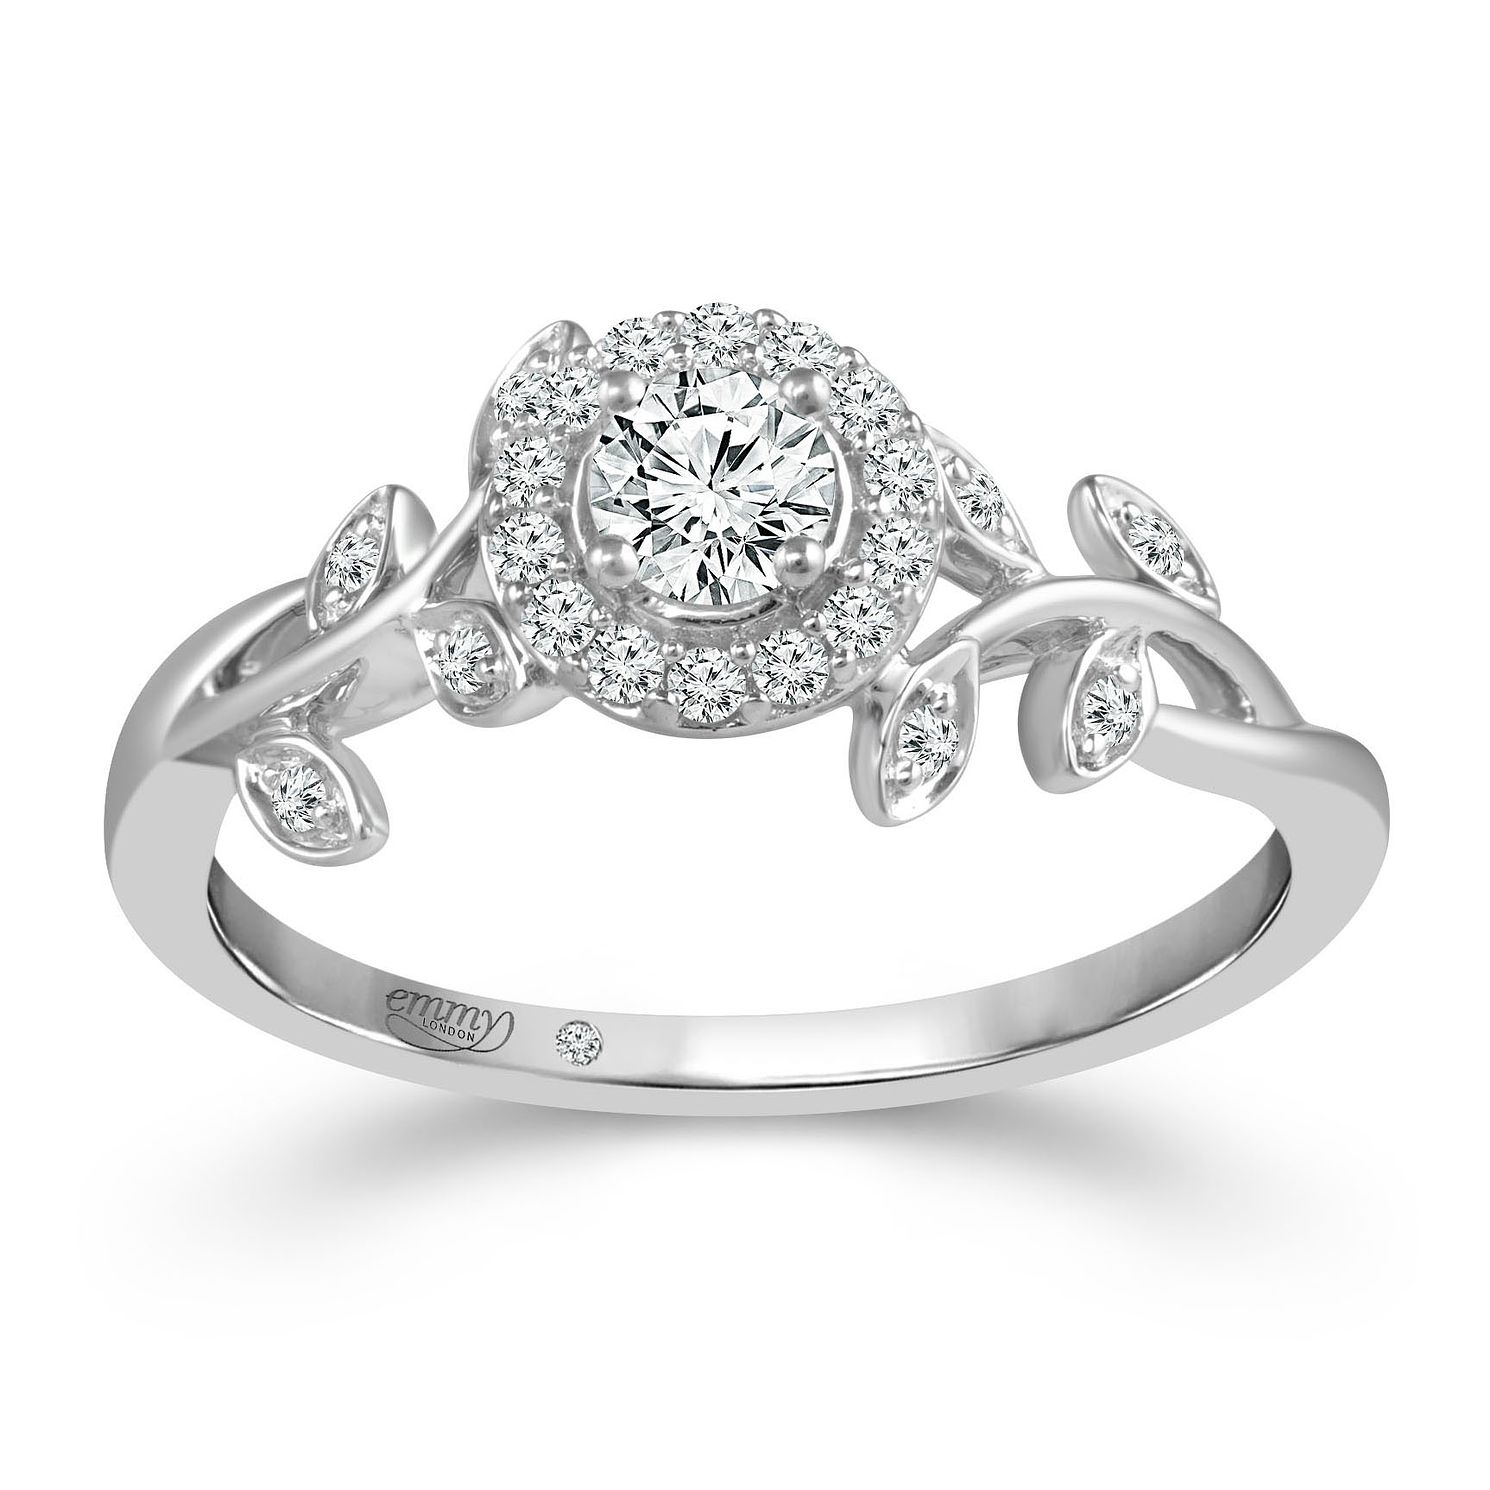 Emmy London 9ct White Gold 1/3ct Diamond Leaf Design Ring - Product number 4481216